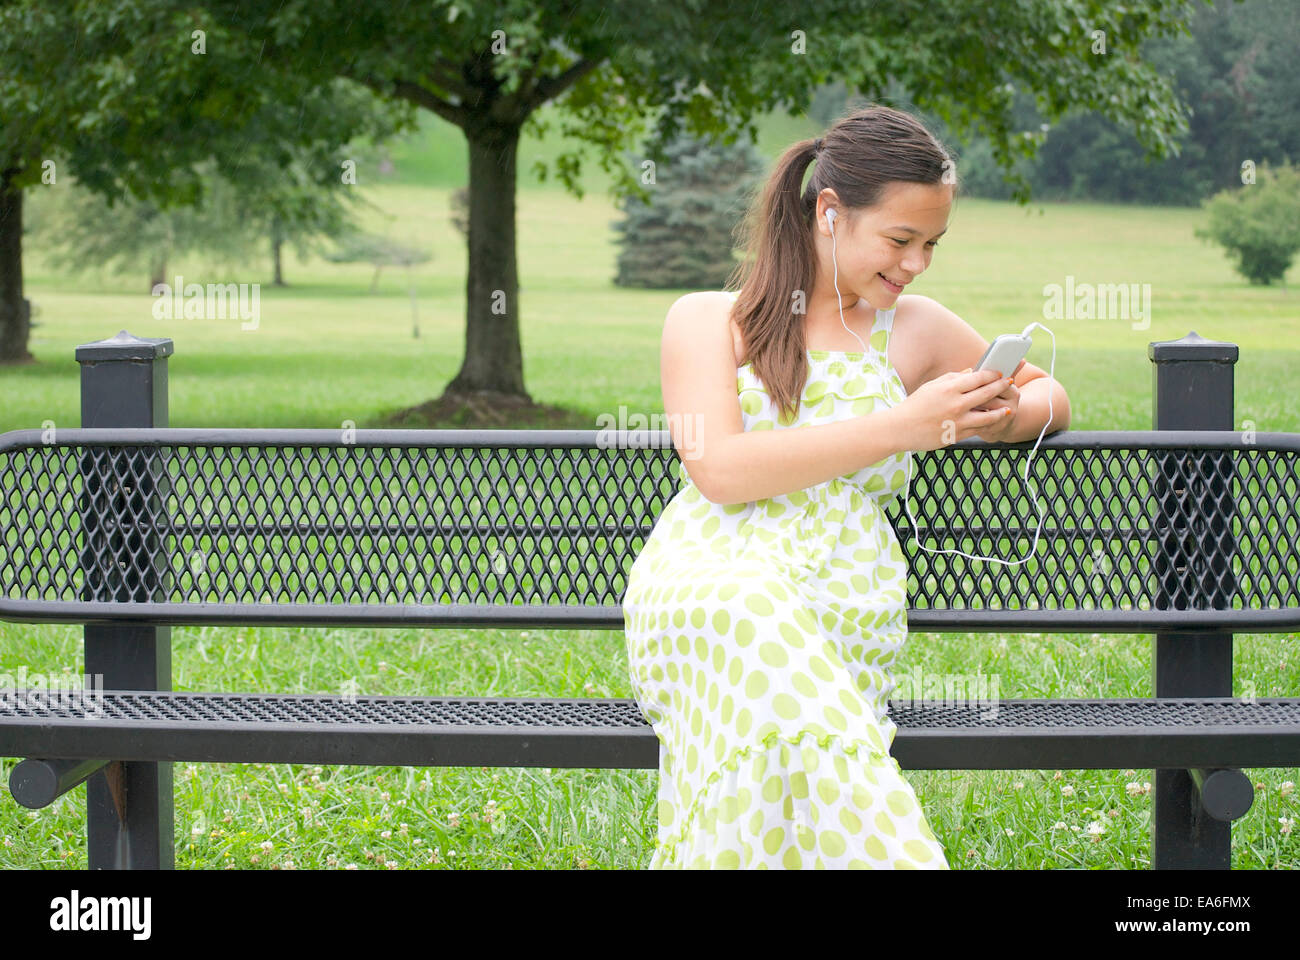 Girl (10-11 years) on bench with smartphone - Stock Image